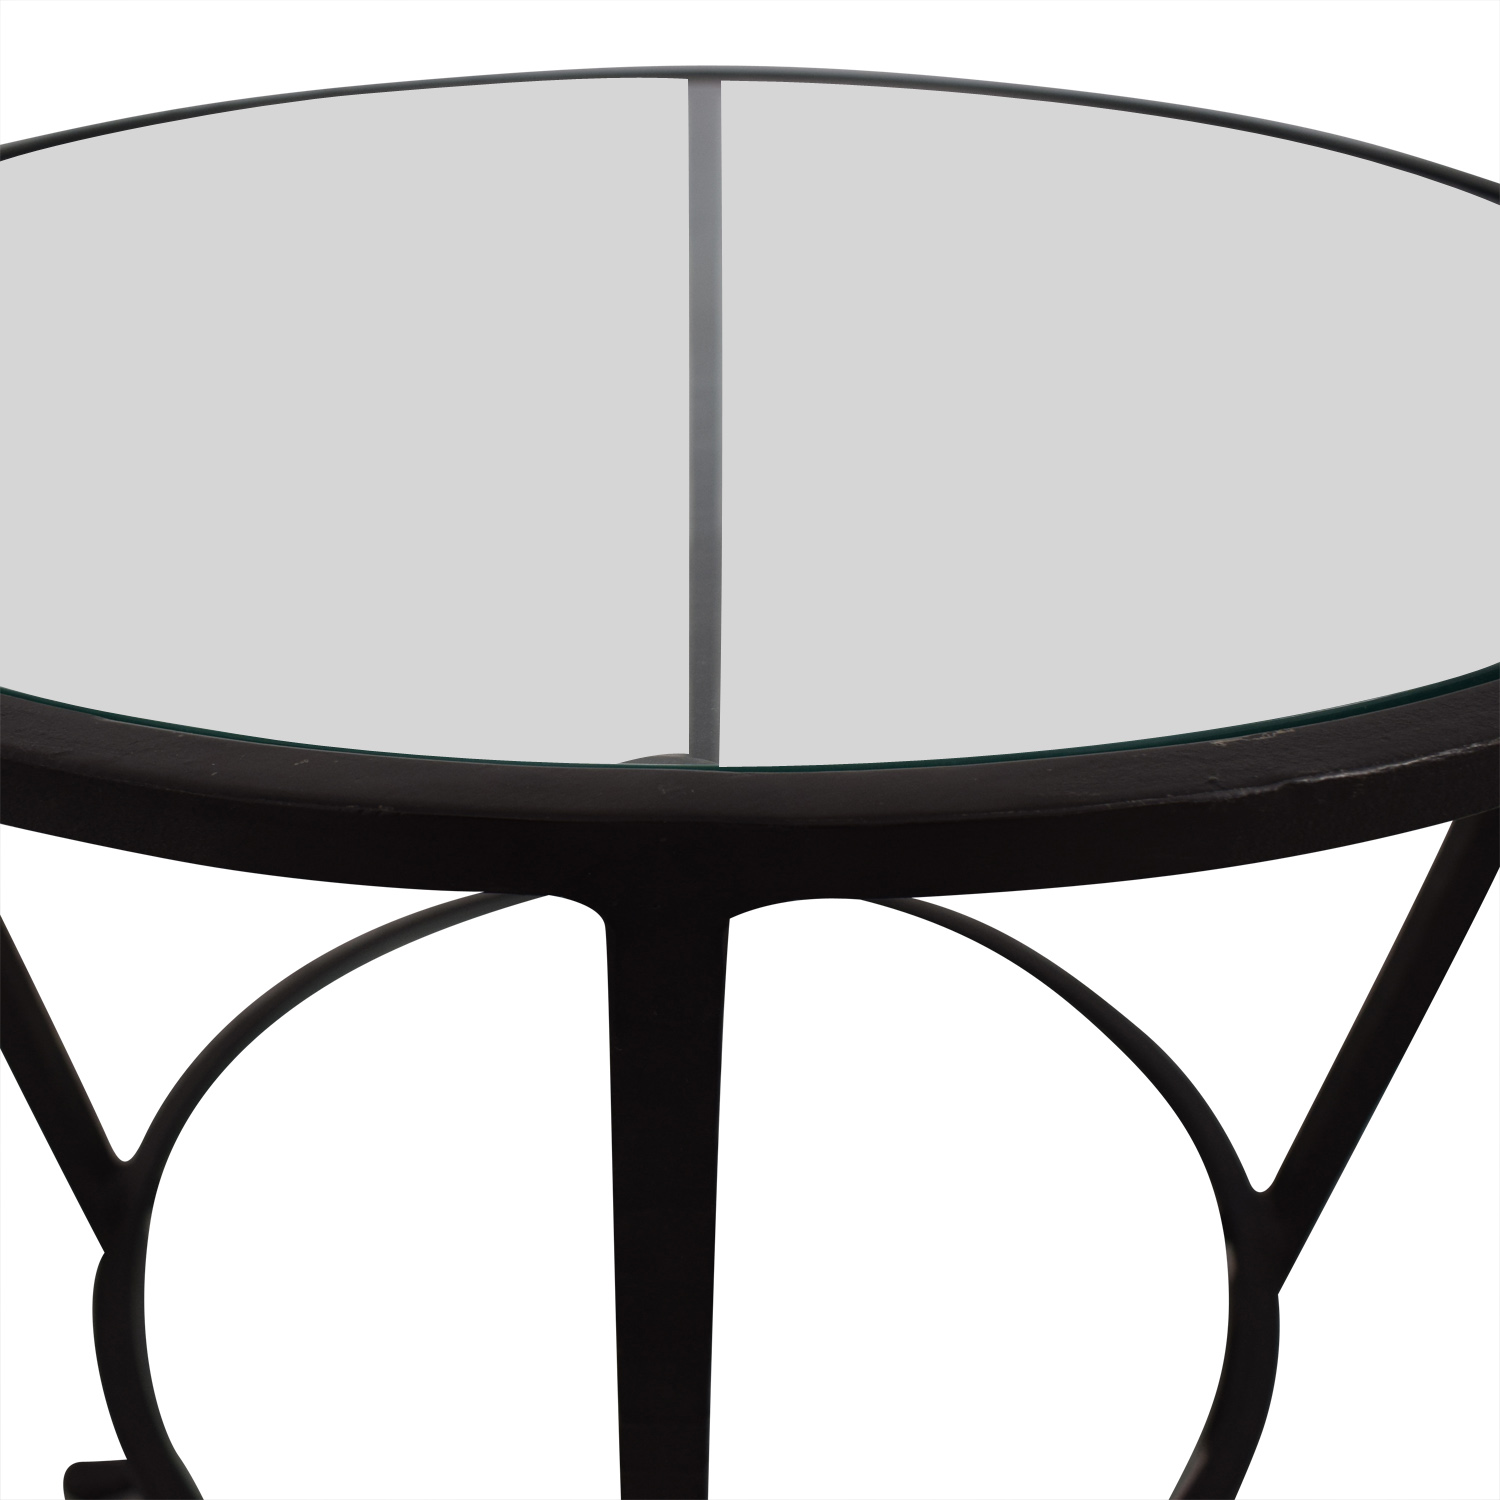 Pottery Barn Round Metal & Glass Table sale